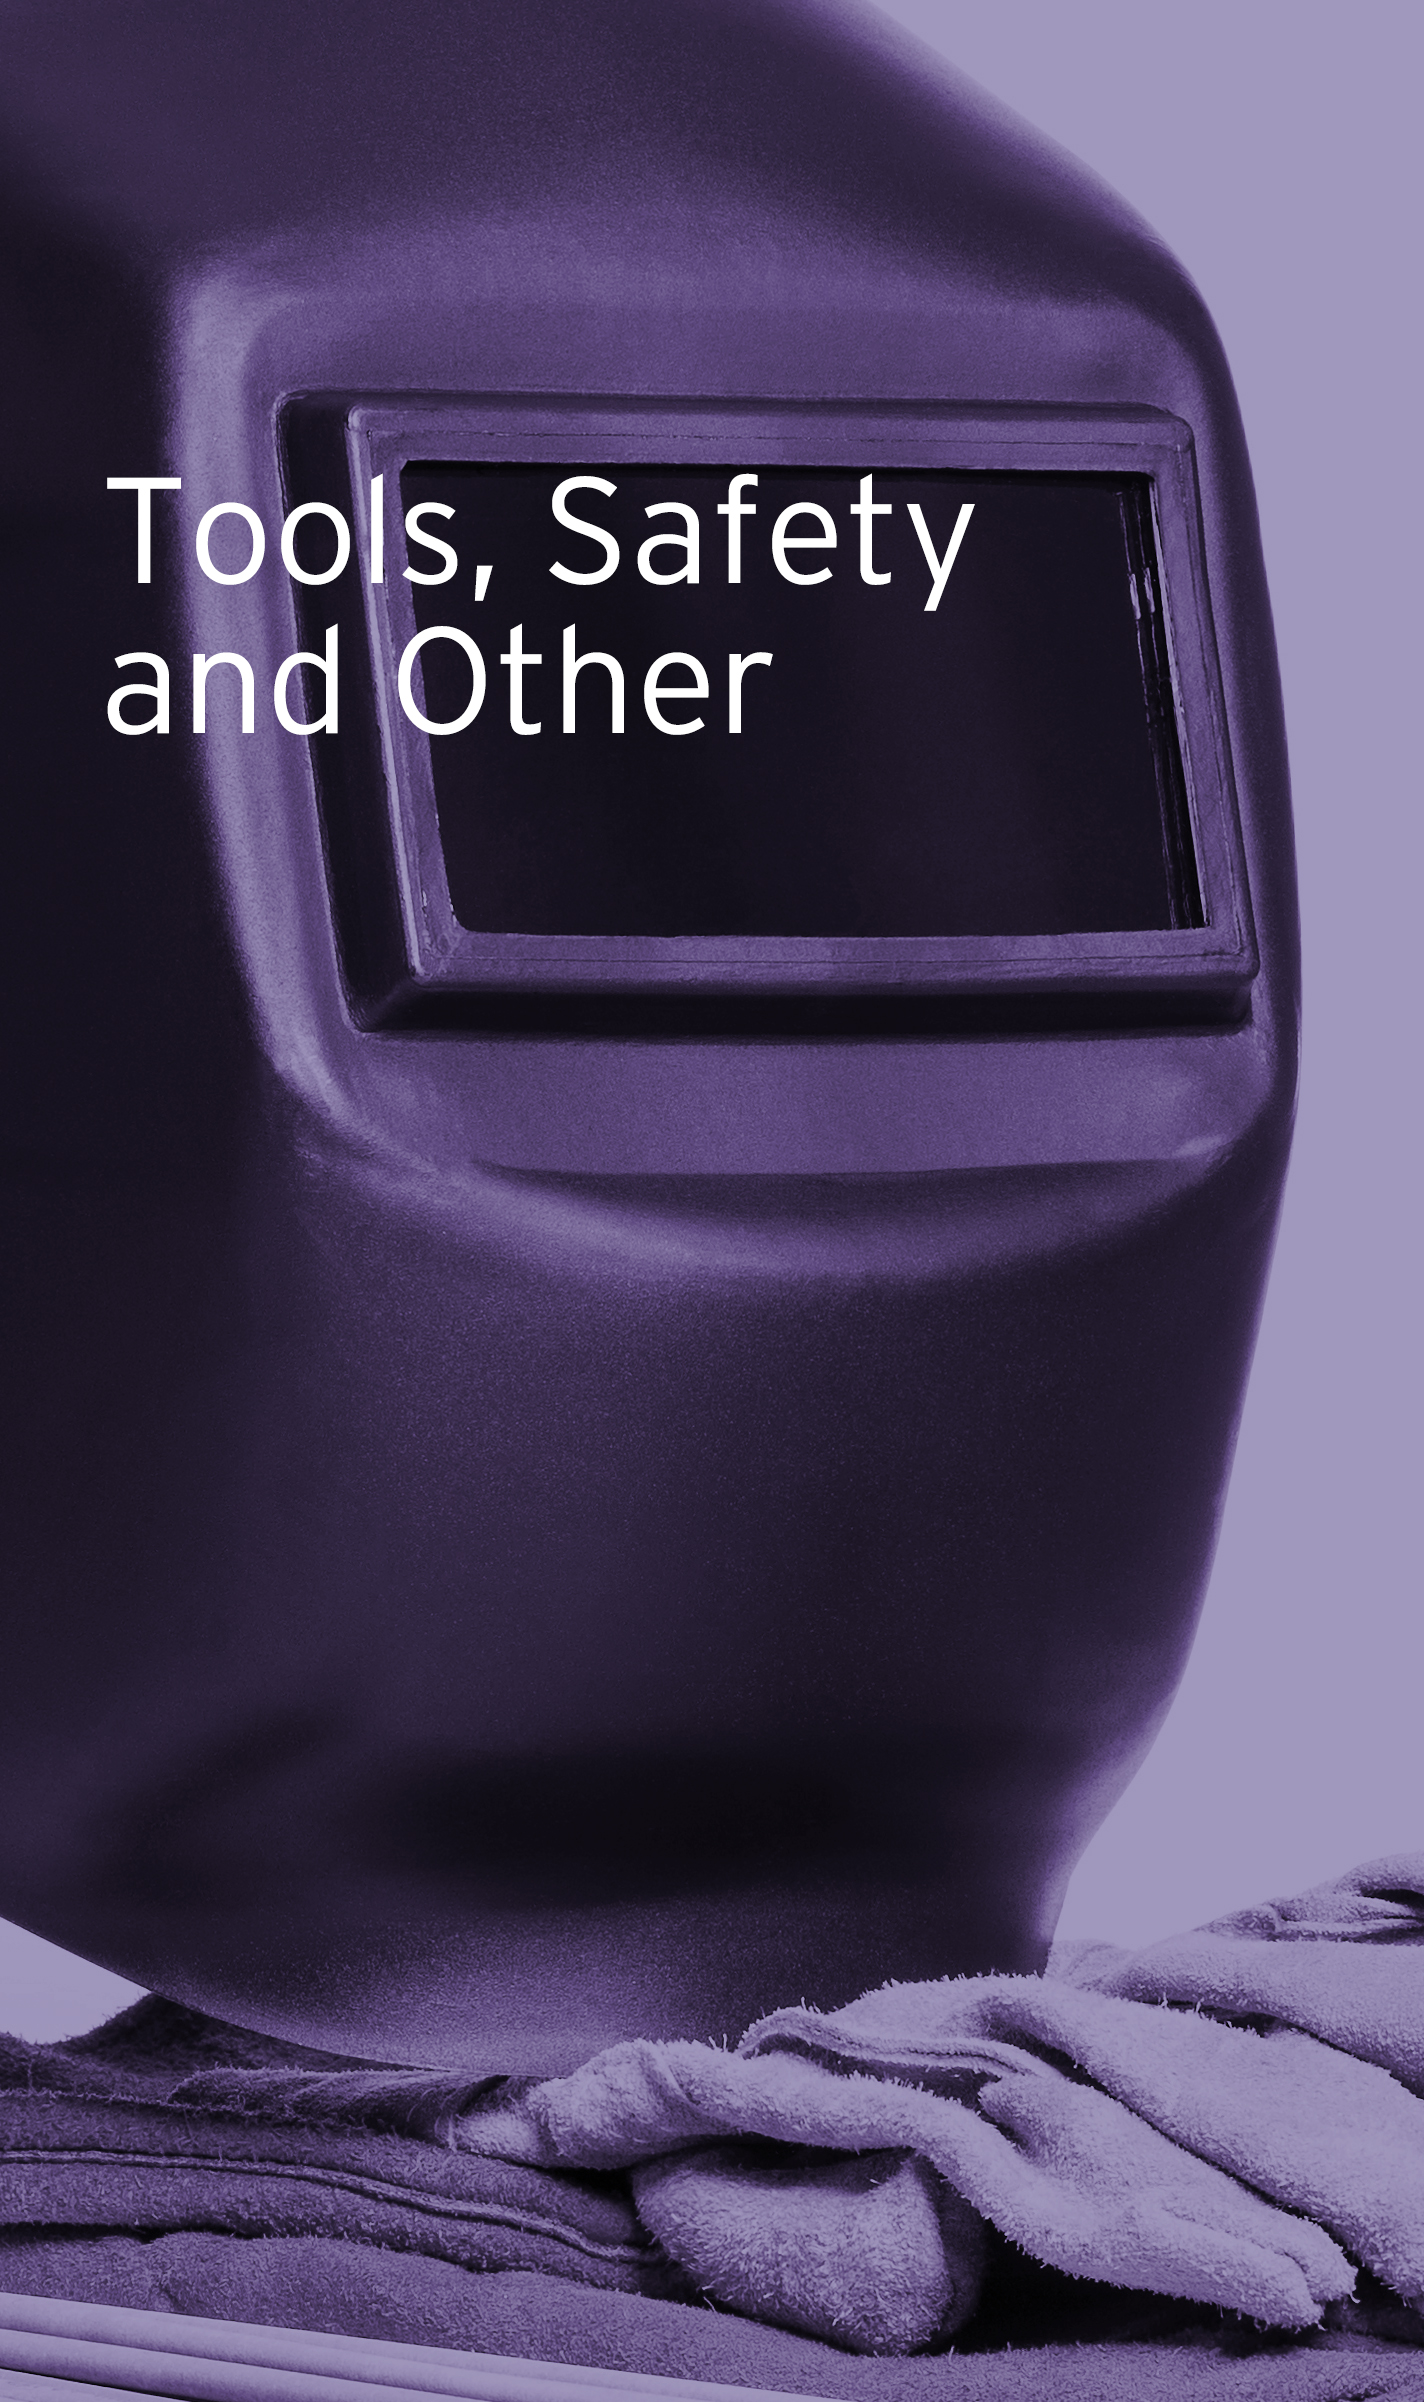 Tools, Safety and Other